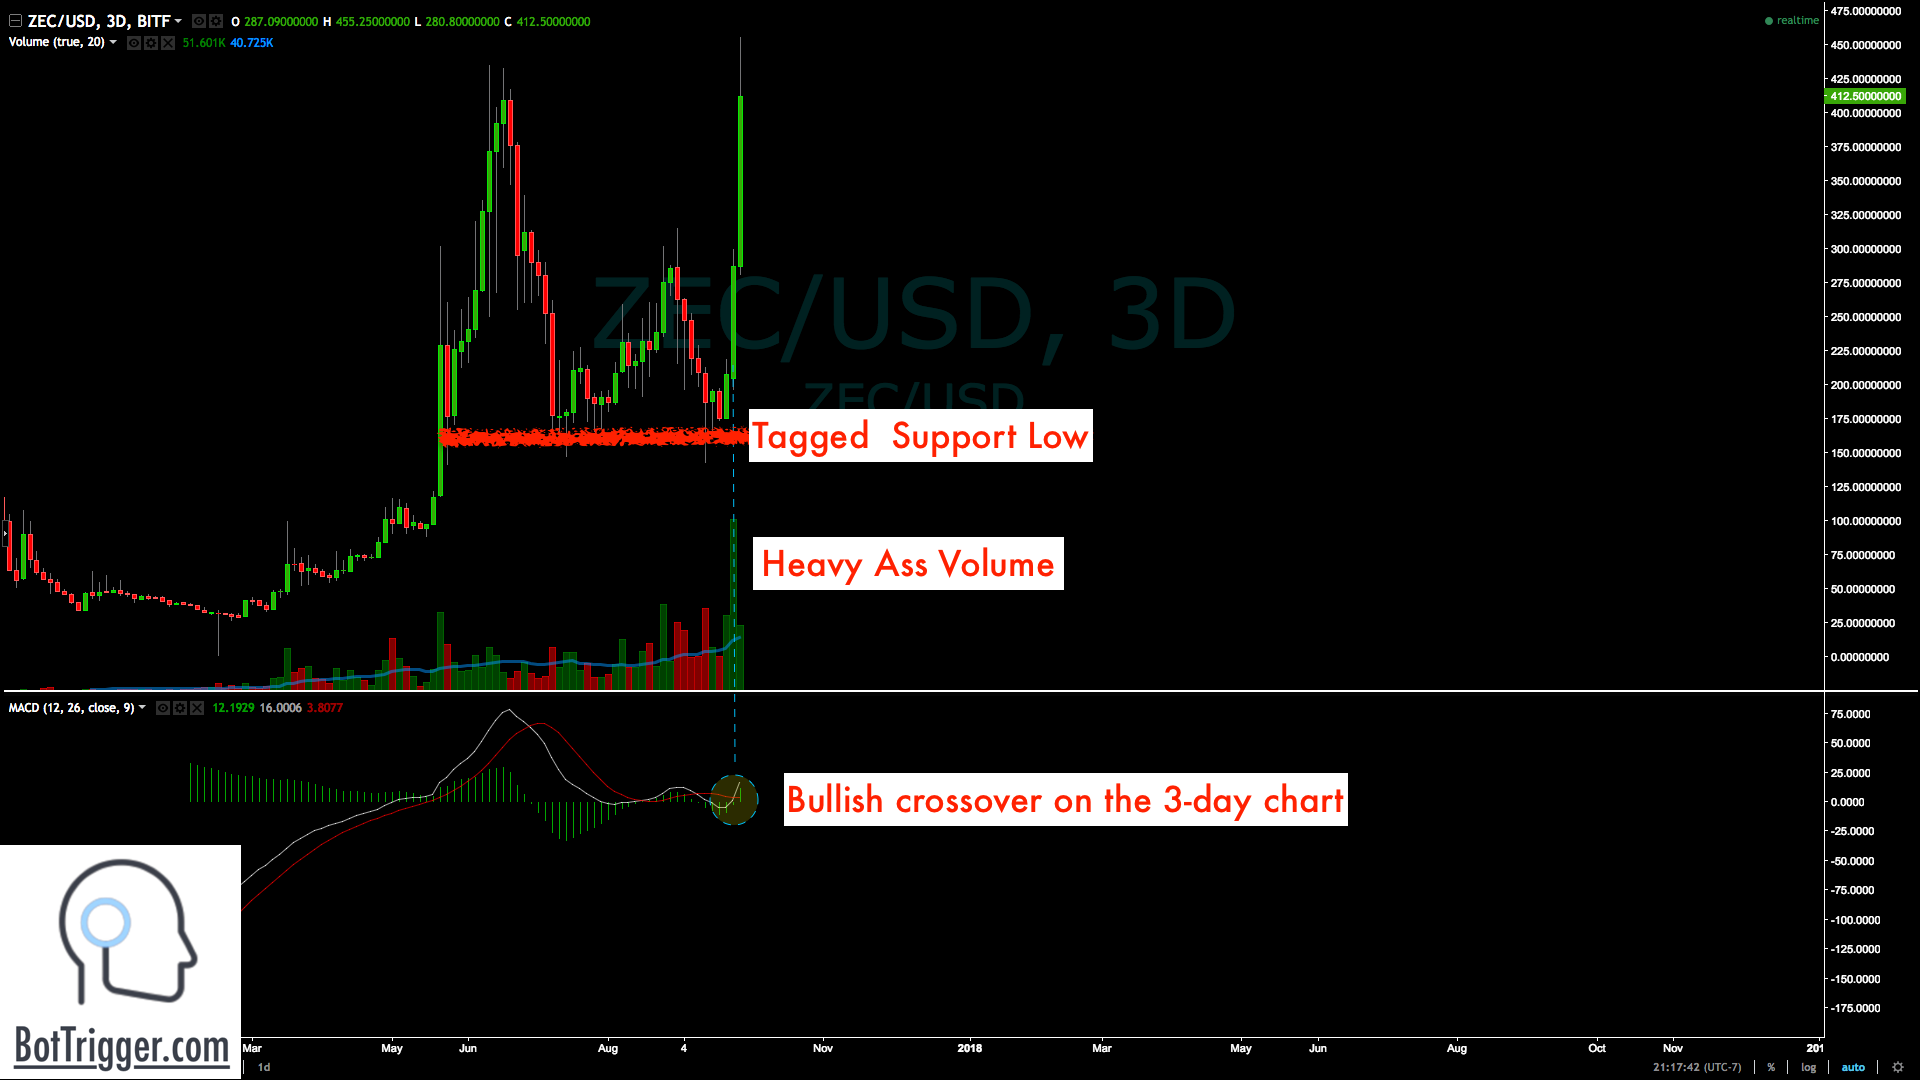 Market Cap $888 million, breaking out on the following technical setup